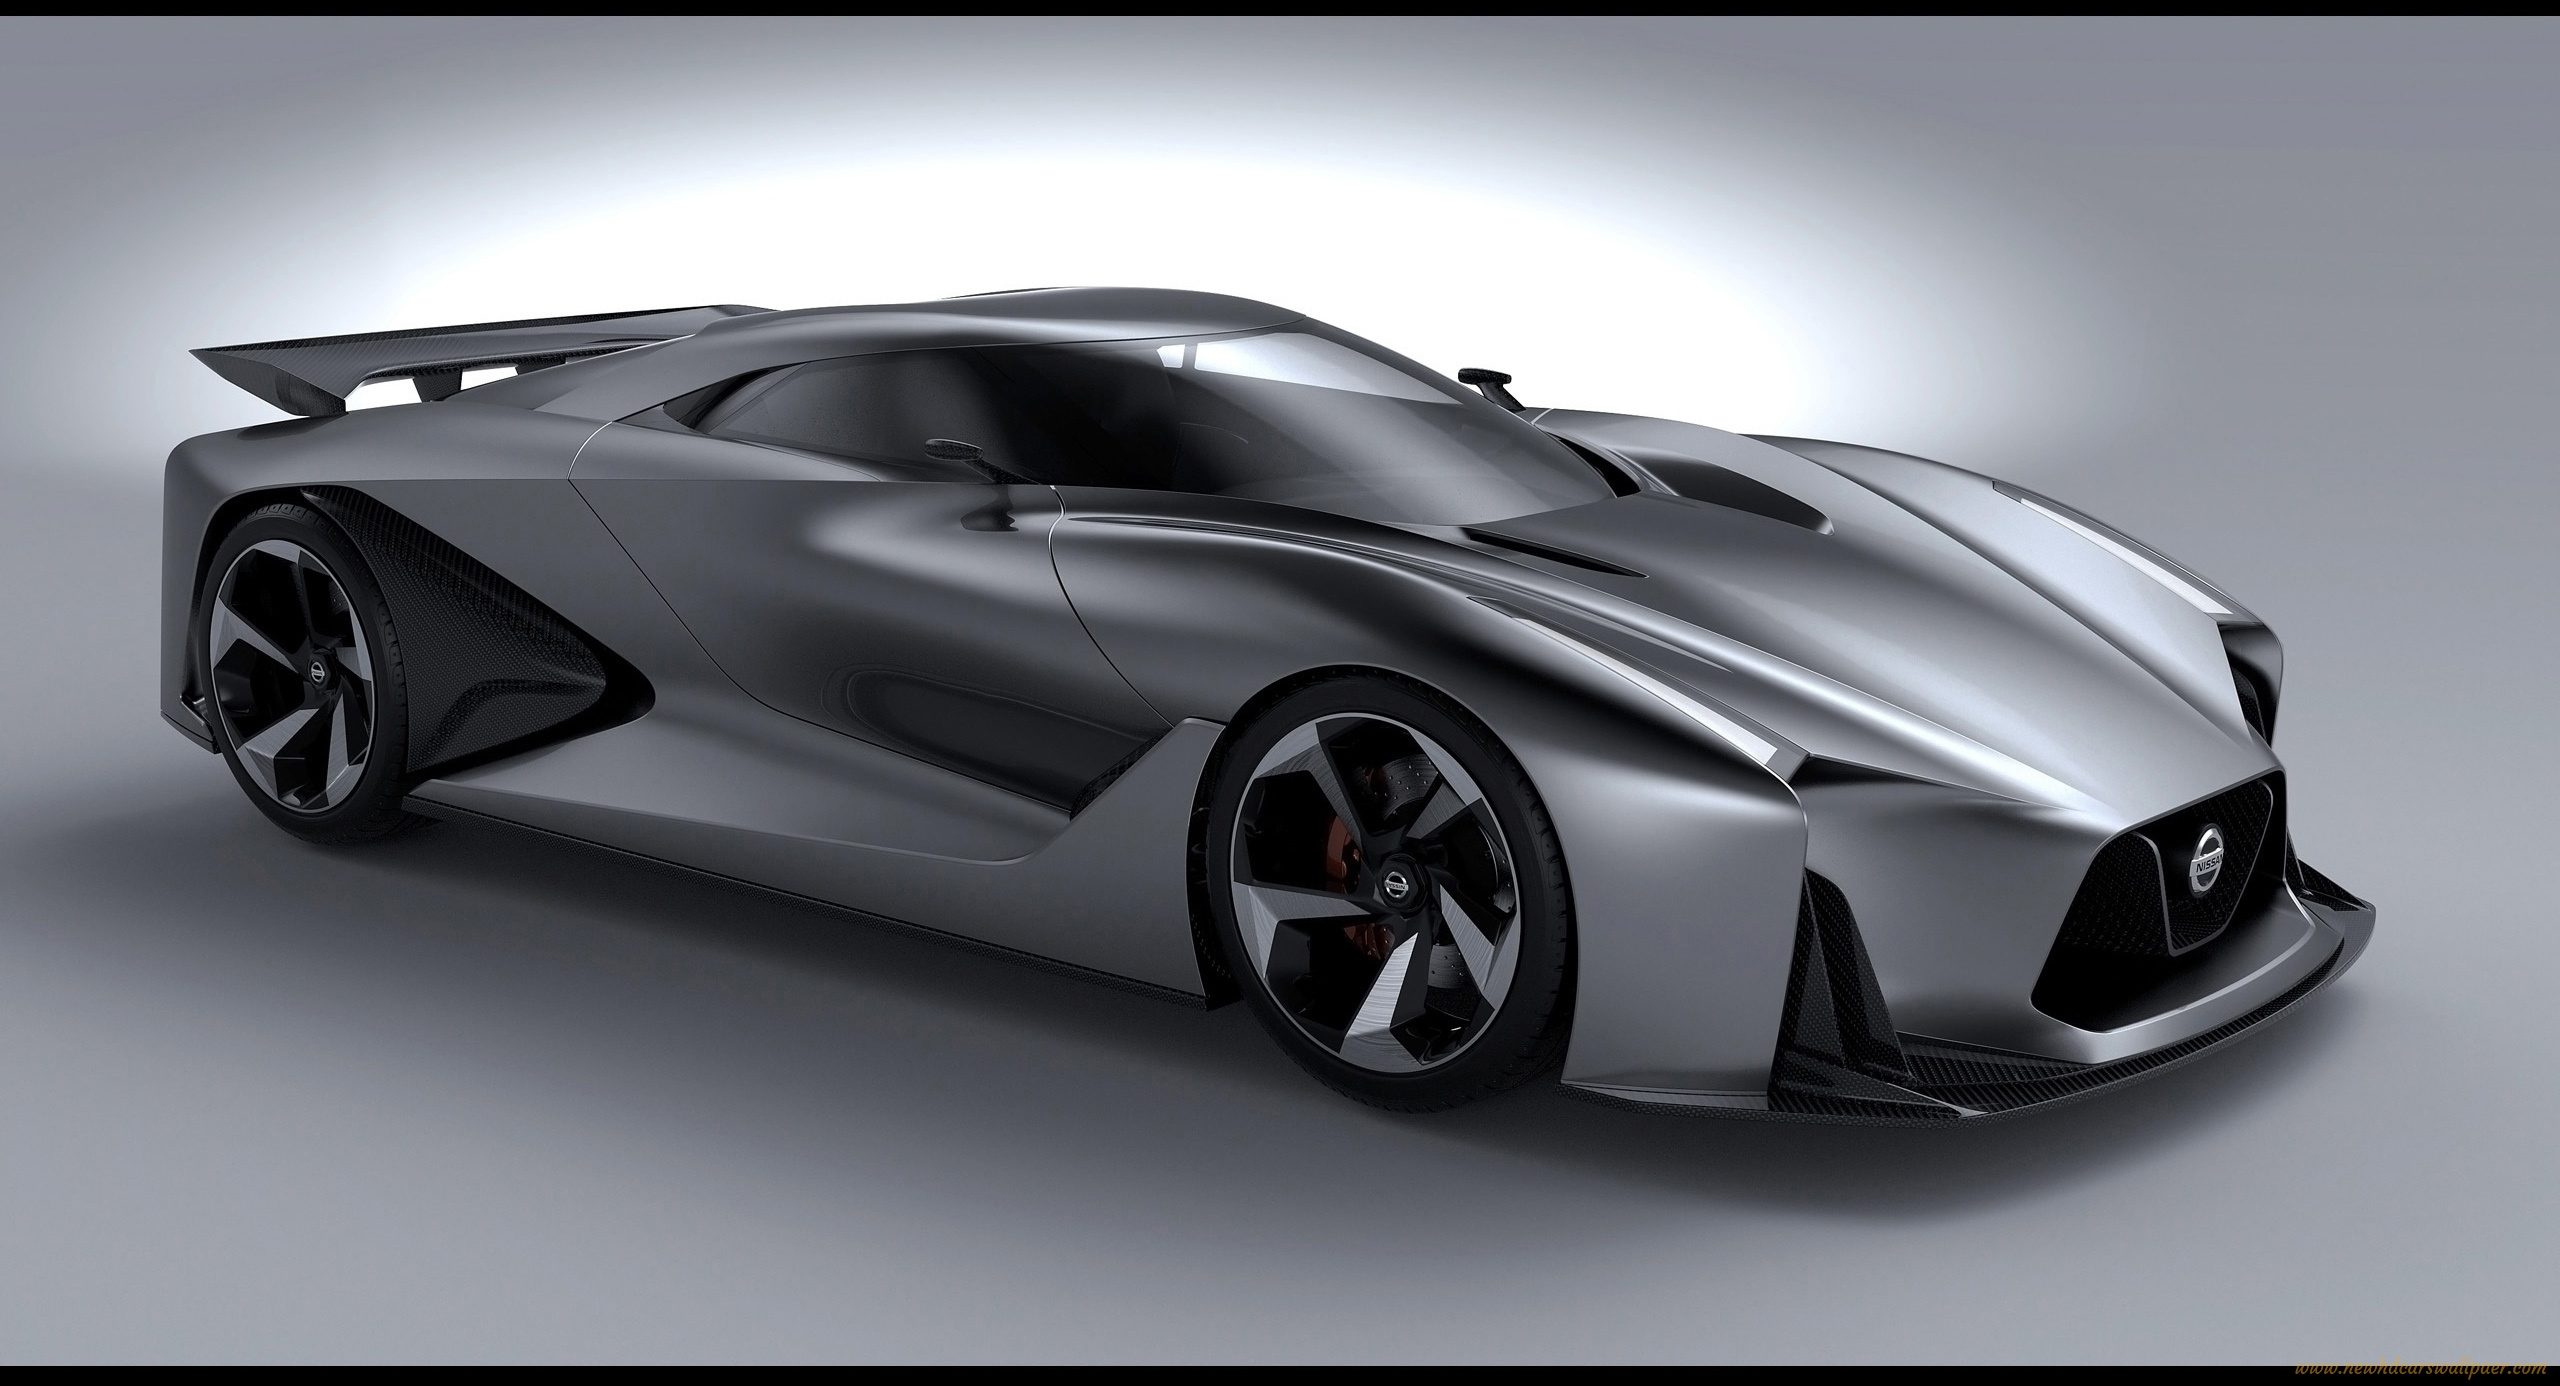 51 The Best 2020 Ford GT Concept and Review